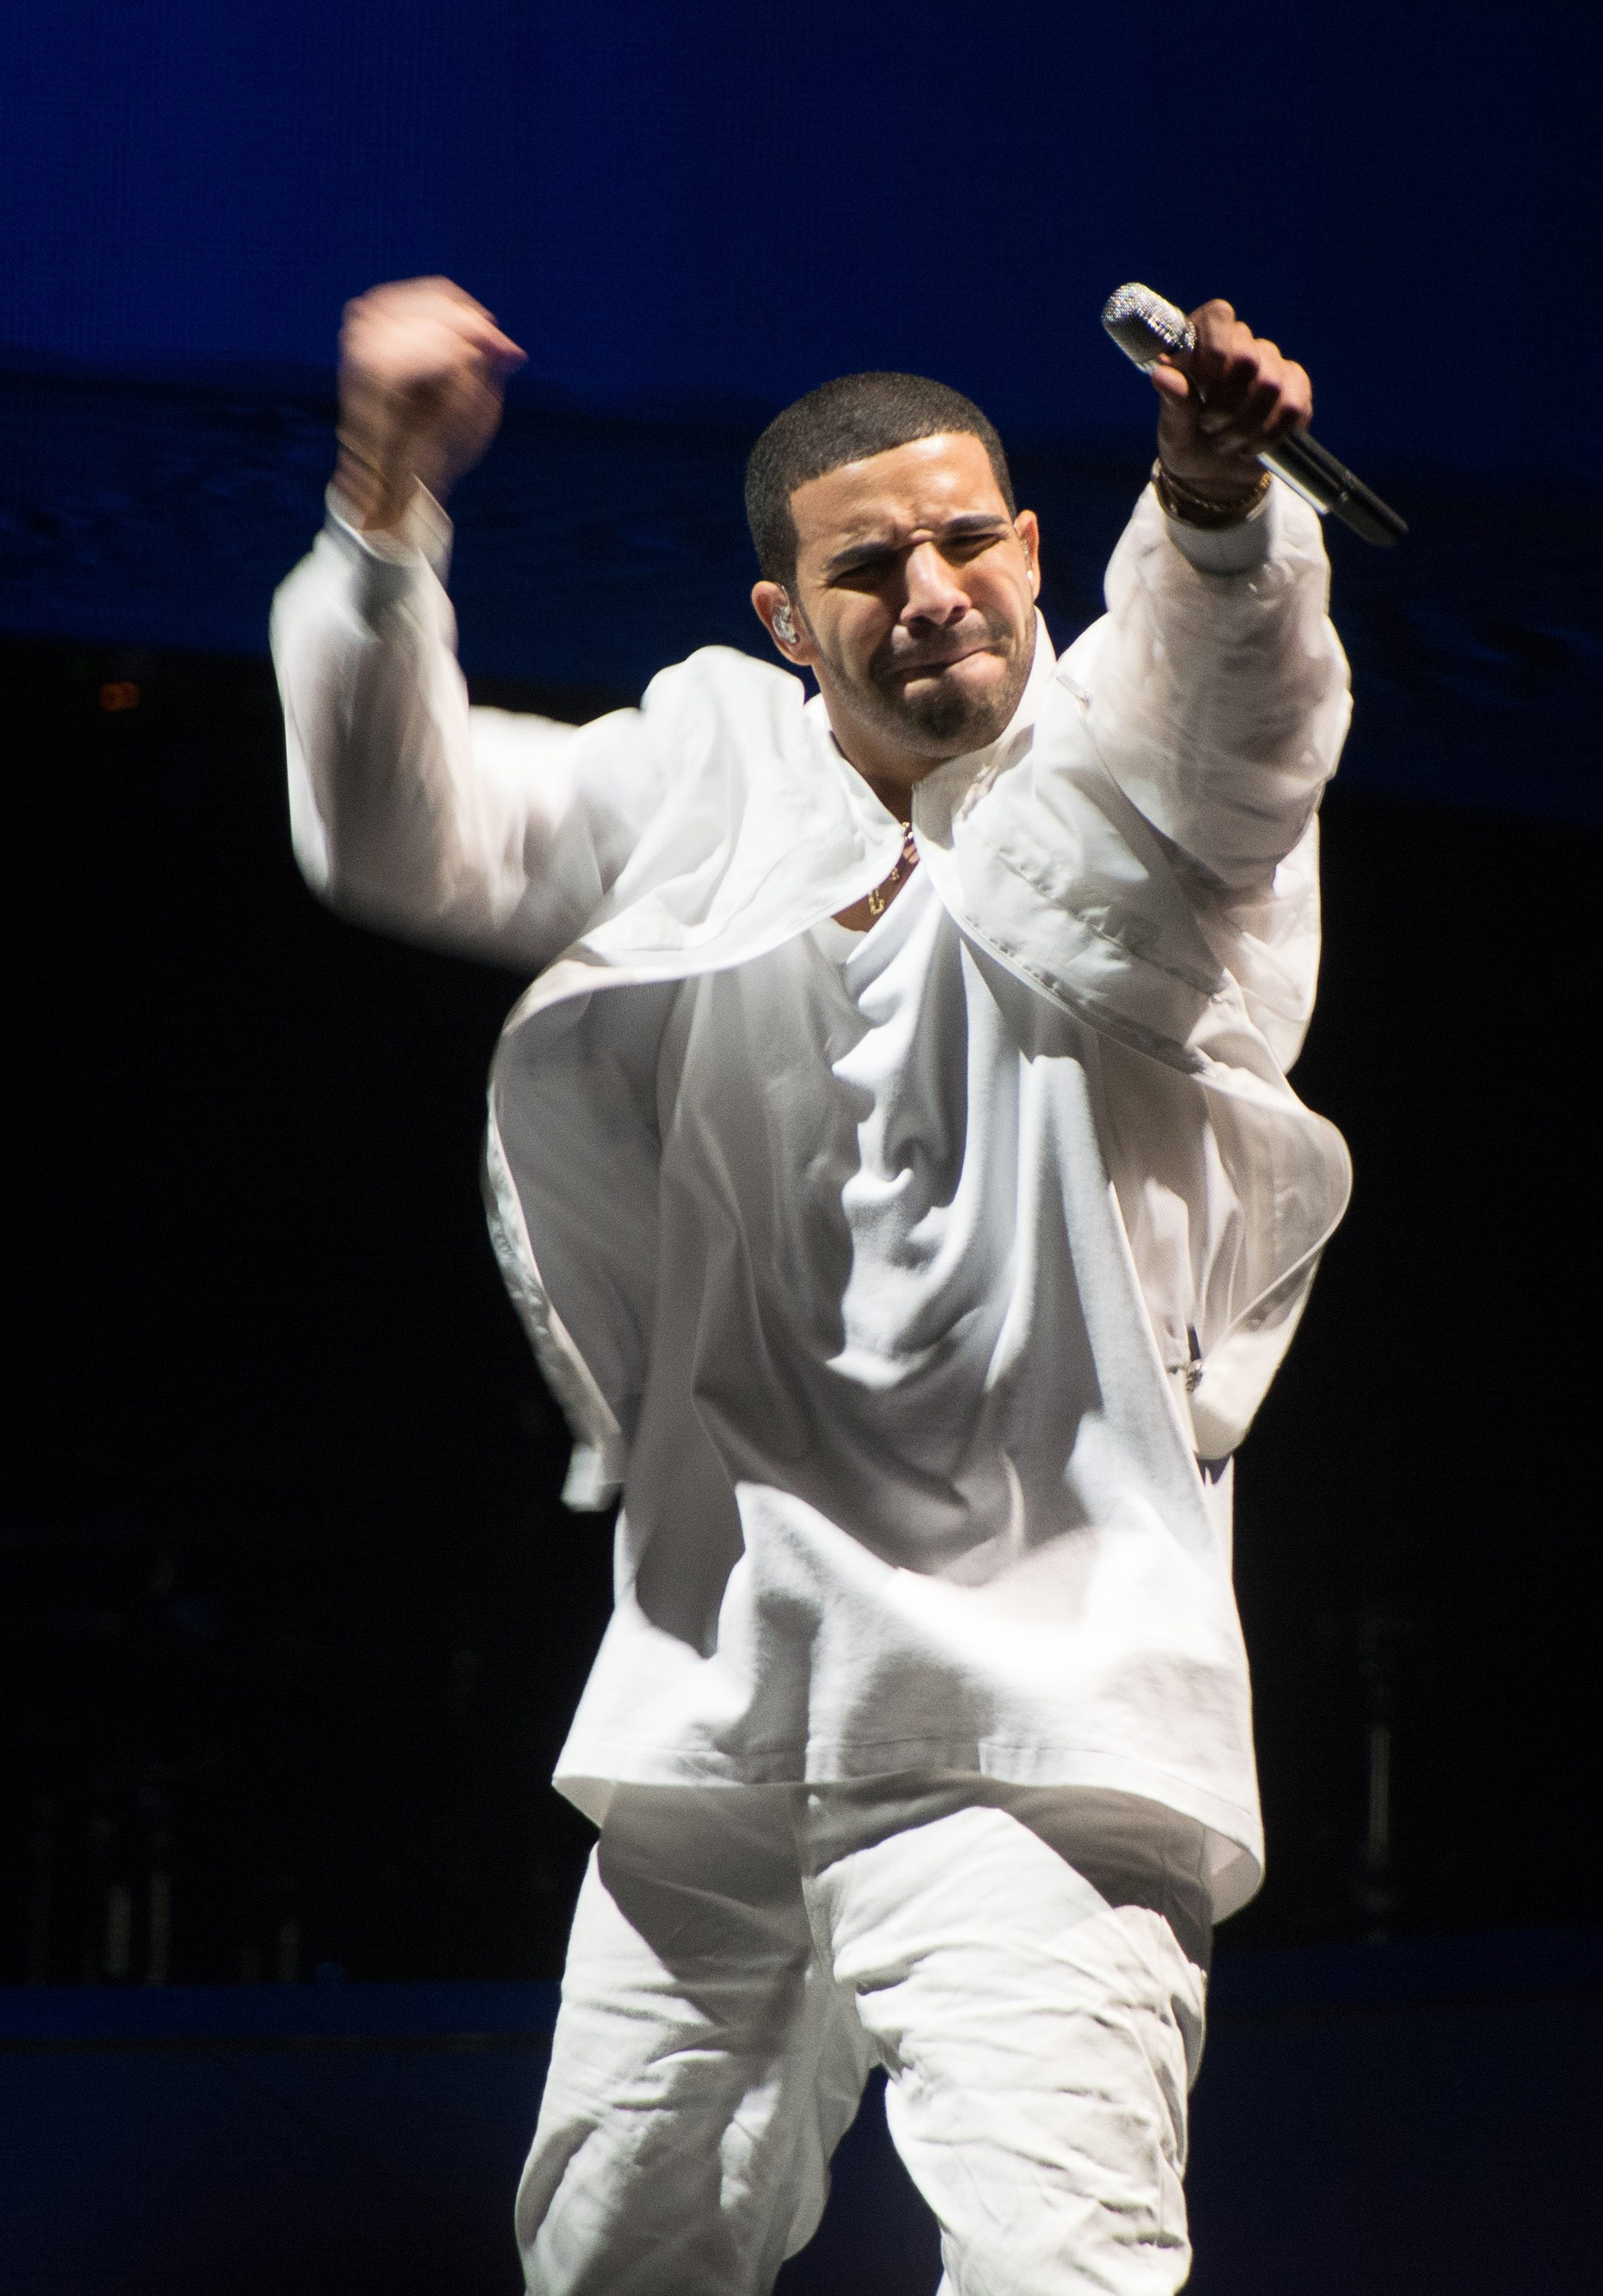 """NEWARK, NJ – OCTOBER 27:  Drake performs at the """"Would You Like A Tour?"""" Concert at Prudential Center on October 27, 2013 in Newark, New Jersey.  (Photo by Dave Kotinsky/Getty Images)"""